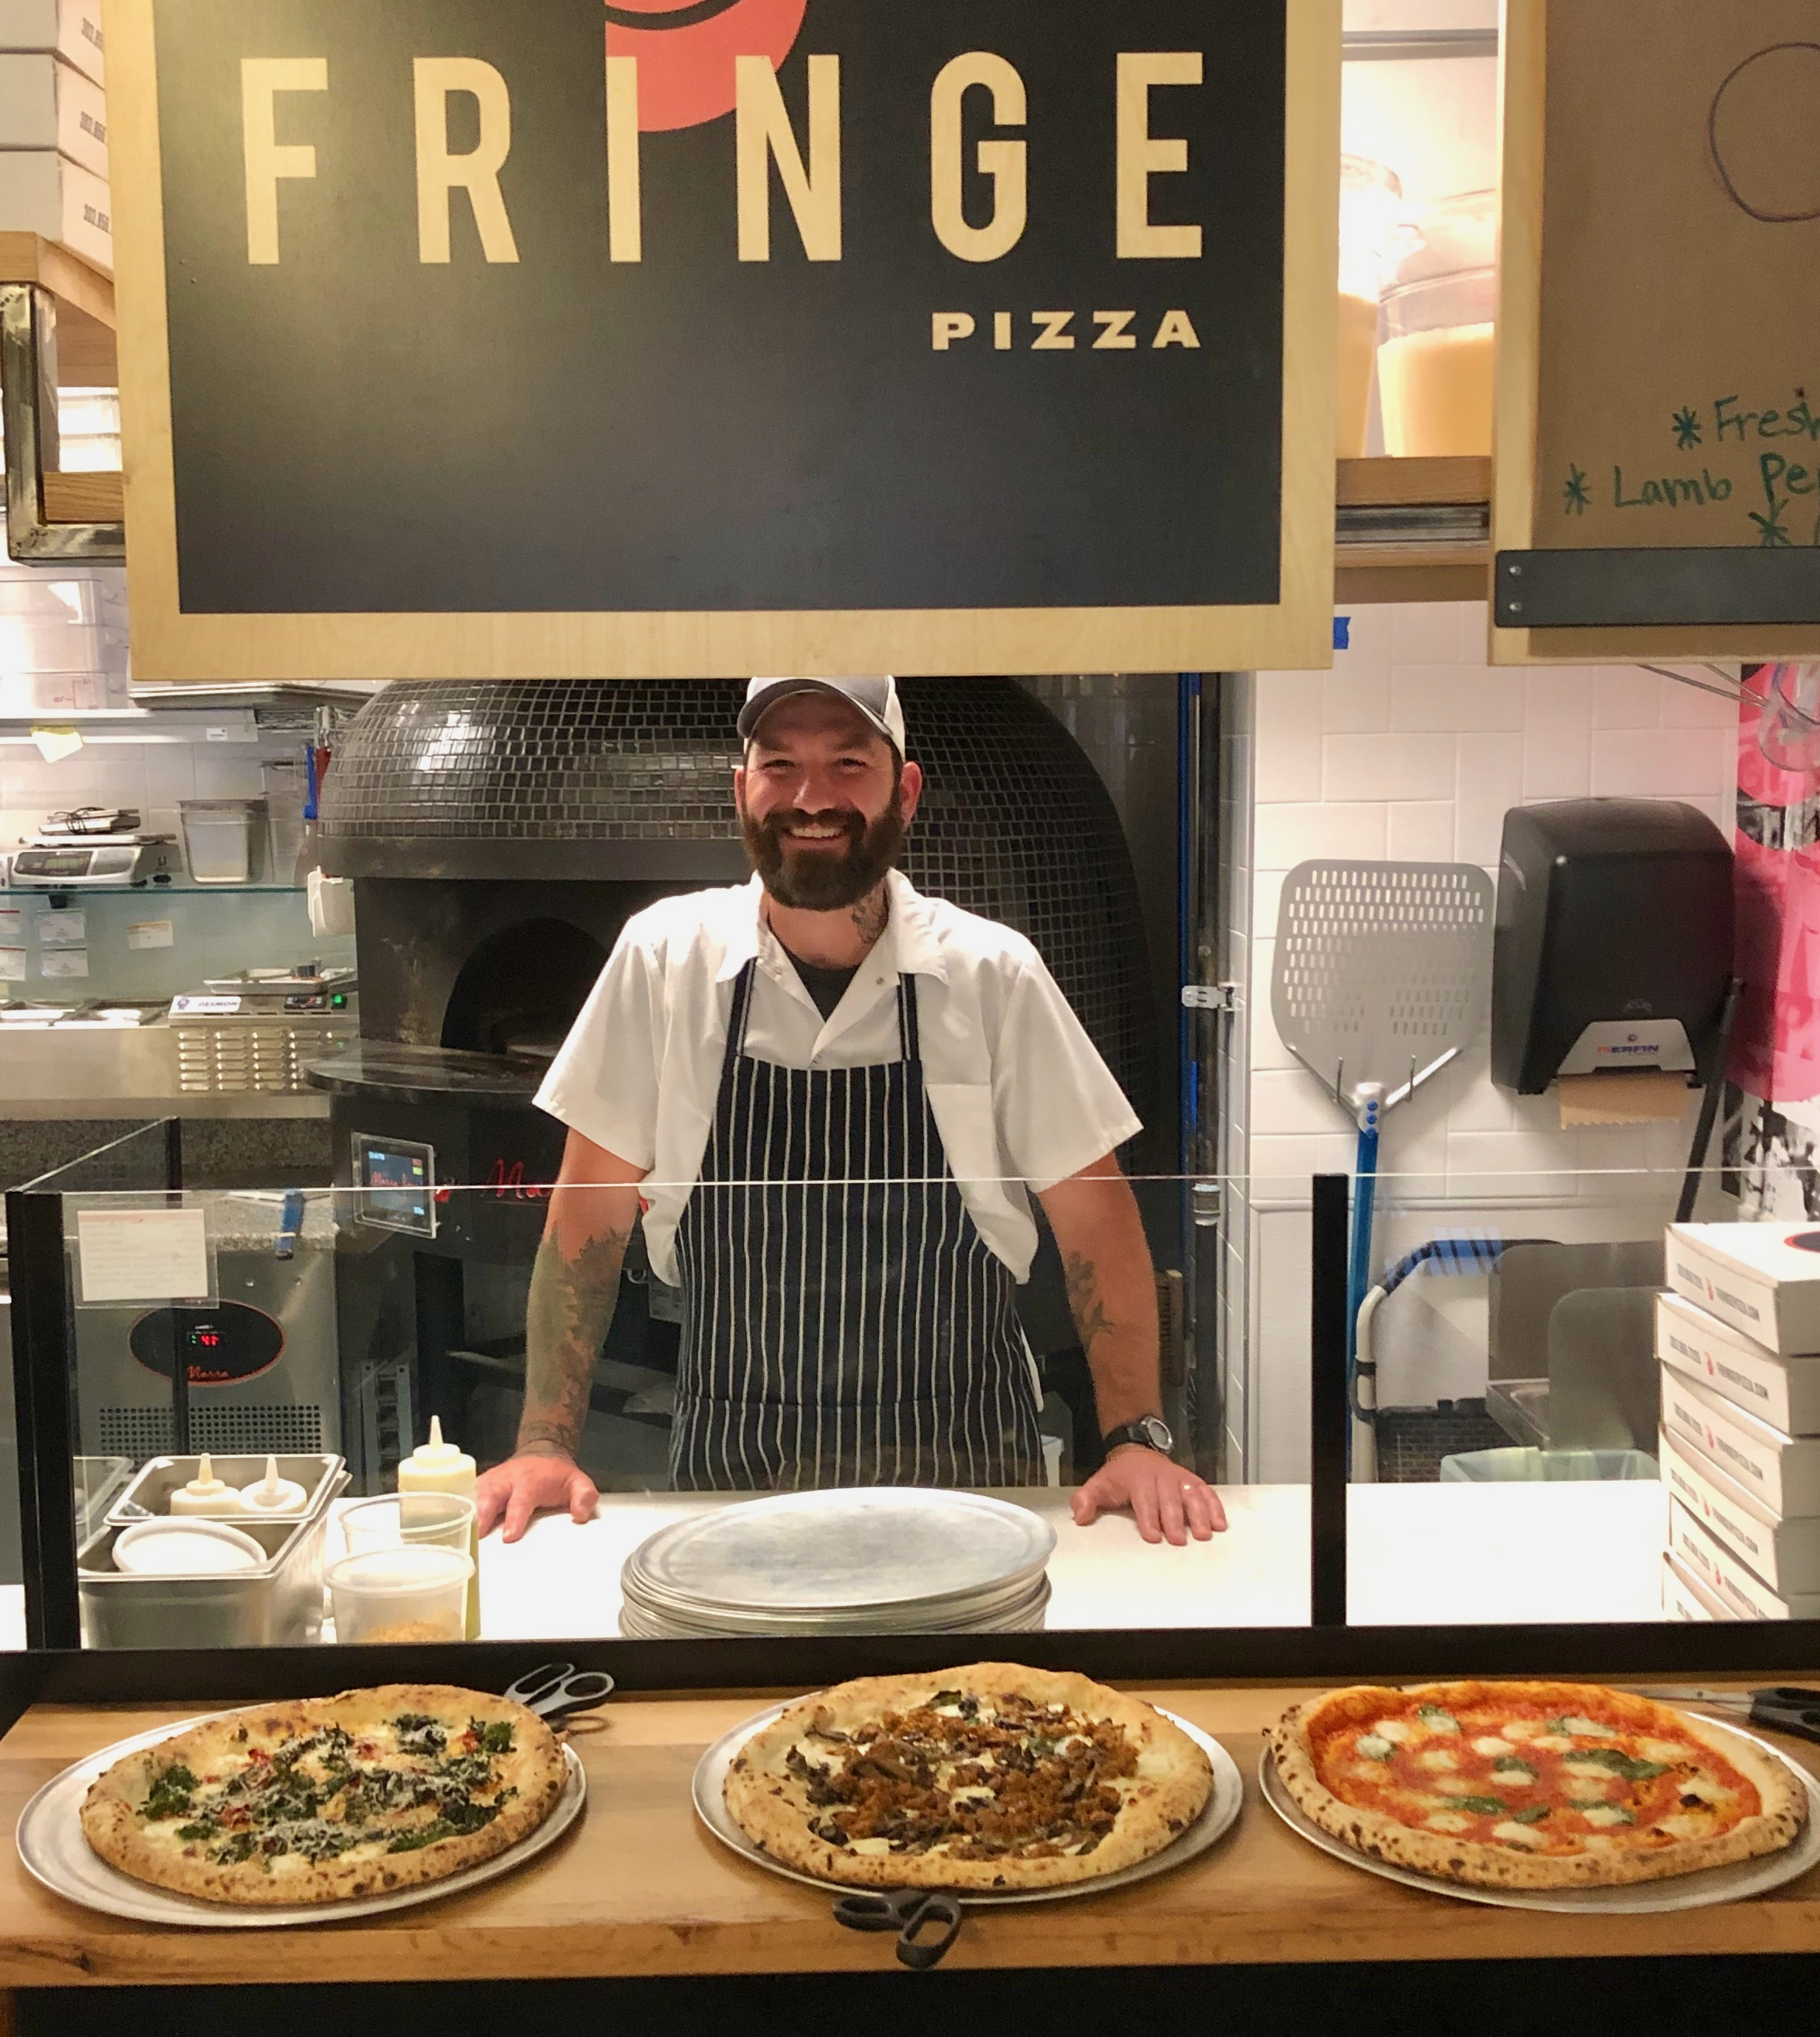 A photo of Nate Rajotte standing behind the counter at Fringe Pizza with three pizzas covered with varying toppings in front of him